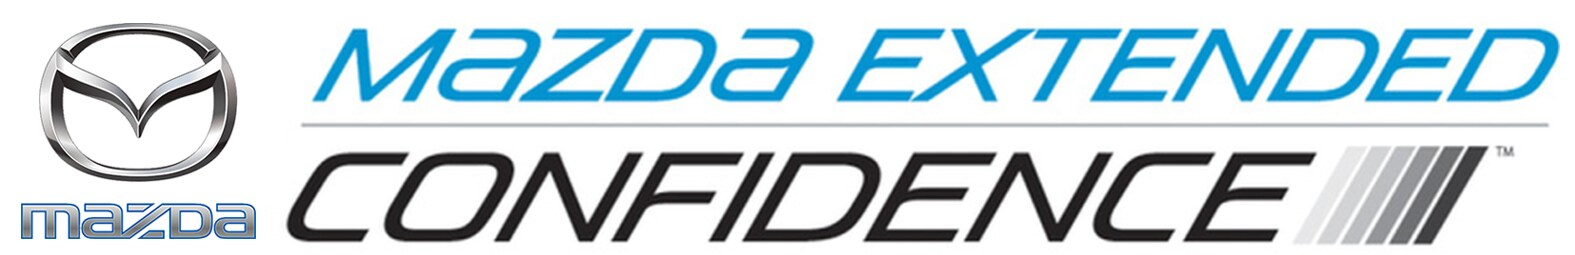 Mazda Extended Confidence Service Contracts Logo